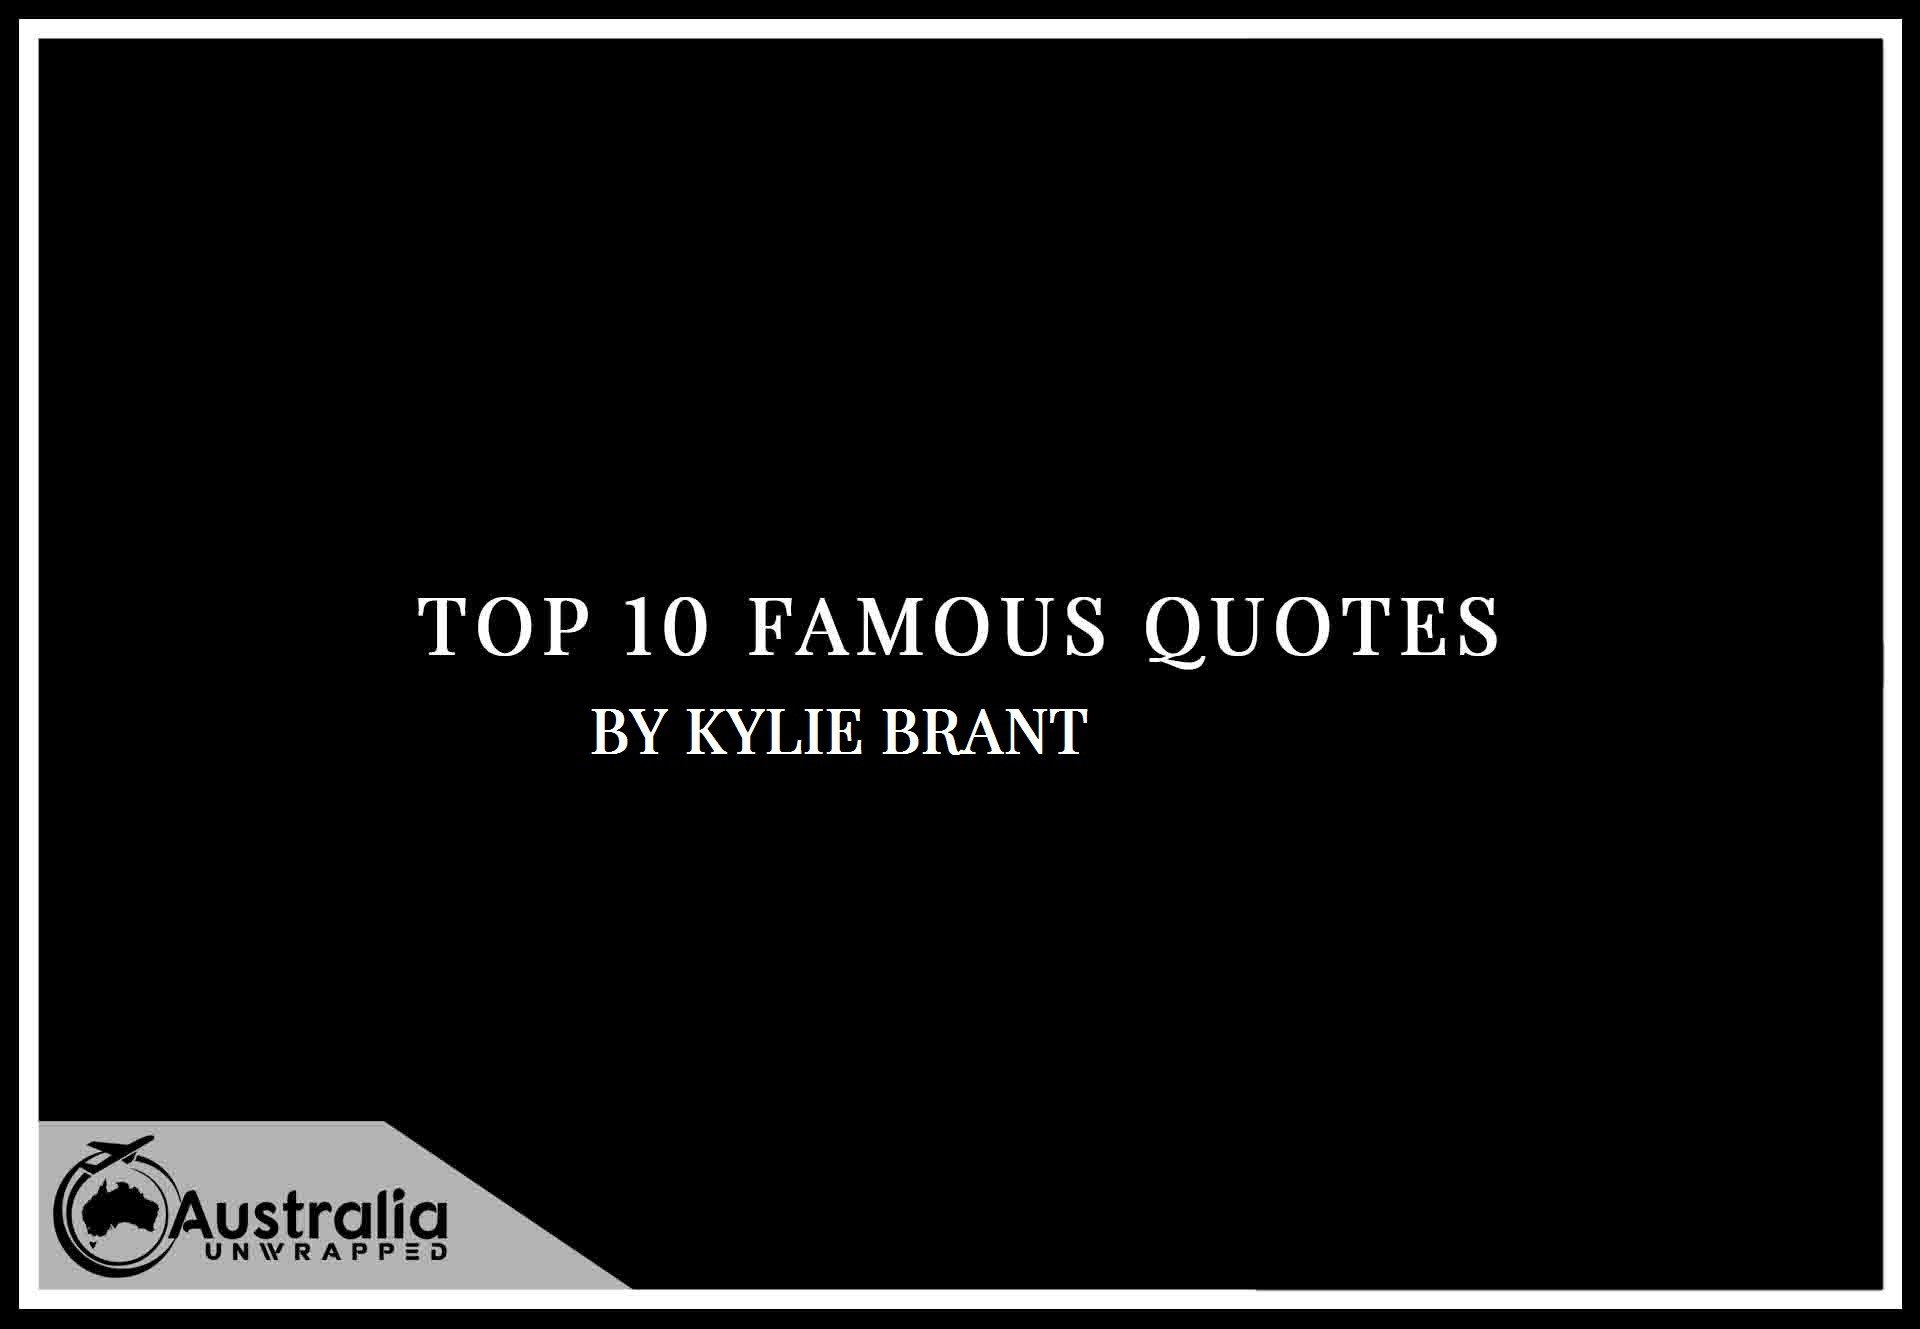 Kylie Brant's Top 10 Popular and Famous Quotes